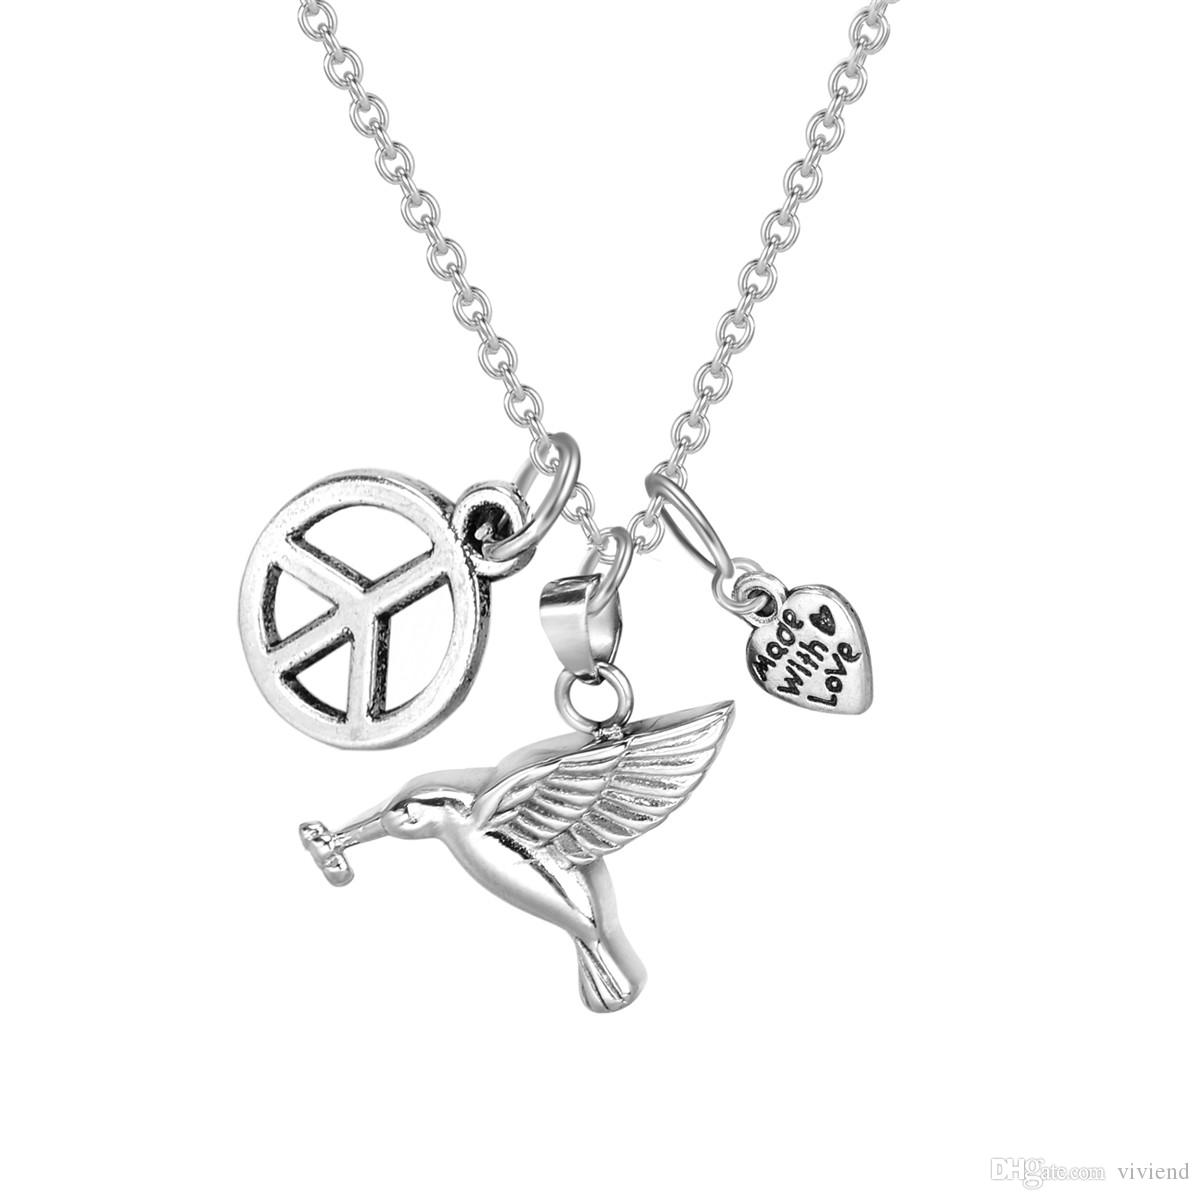 Cremation Jewelry Memorial Ash Keepsake Pendant Hummingbird with Heart&Peace Symbol Charm Urn Necklace with Gift Bag